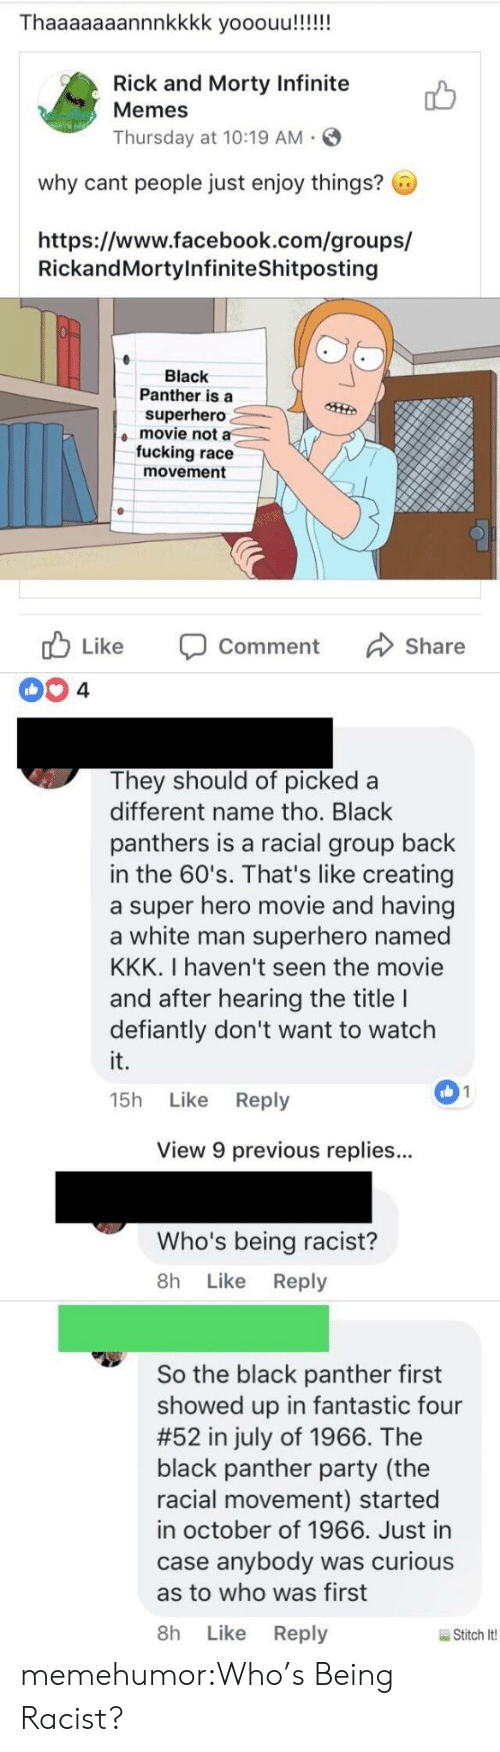 Black Panthers: Thaaaaaaannnkkkk yooouu!!!!!  Rick and Morty Infinite  Memes  Thursday at 10:19 AM  why cant people just enjoy things?  https://www.facebook.com/groups/  RickandMortylnfiniteShitposting  Black  Panther is a  superhero  movie not a  fucking race  movement  cb Like Comment Share  They should of picked a  different name tho. Black  panthers is a racial group back  in the 60's. That's like creating  a super hero movie and having  a white man superhero named  KKK. I haven't seen the movie  and after hearing the title I  defiantly don't want to watch  it.  15h Like Reply  01  View 9 previous replies..  Who's being racist?  8h Like Reply  So the black panther first  showed up in fantastic four  #52 in july of 1966. The  black panther party (the  racial movement) started  in october of 1966. Just in  case anybody was curious  as to who was first  8h Like Reply  Stitch lt! memehumor:Who's Being Racist?